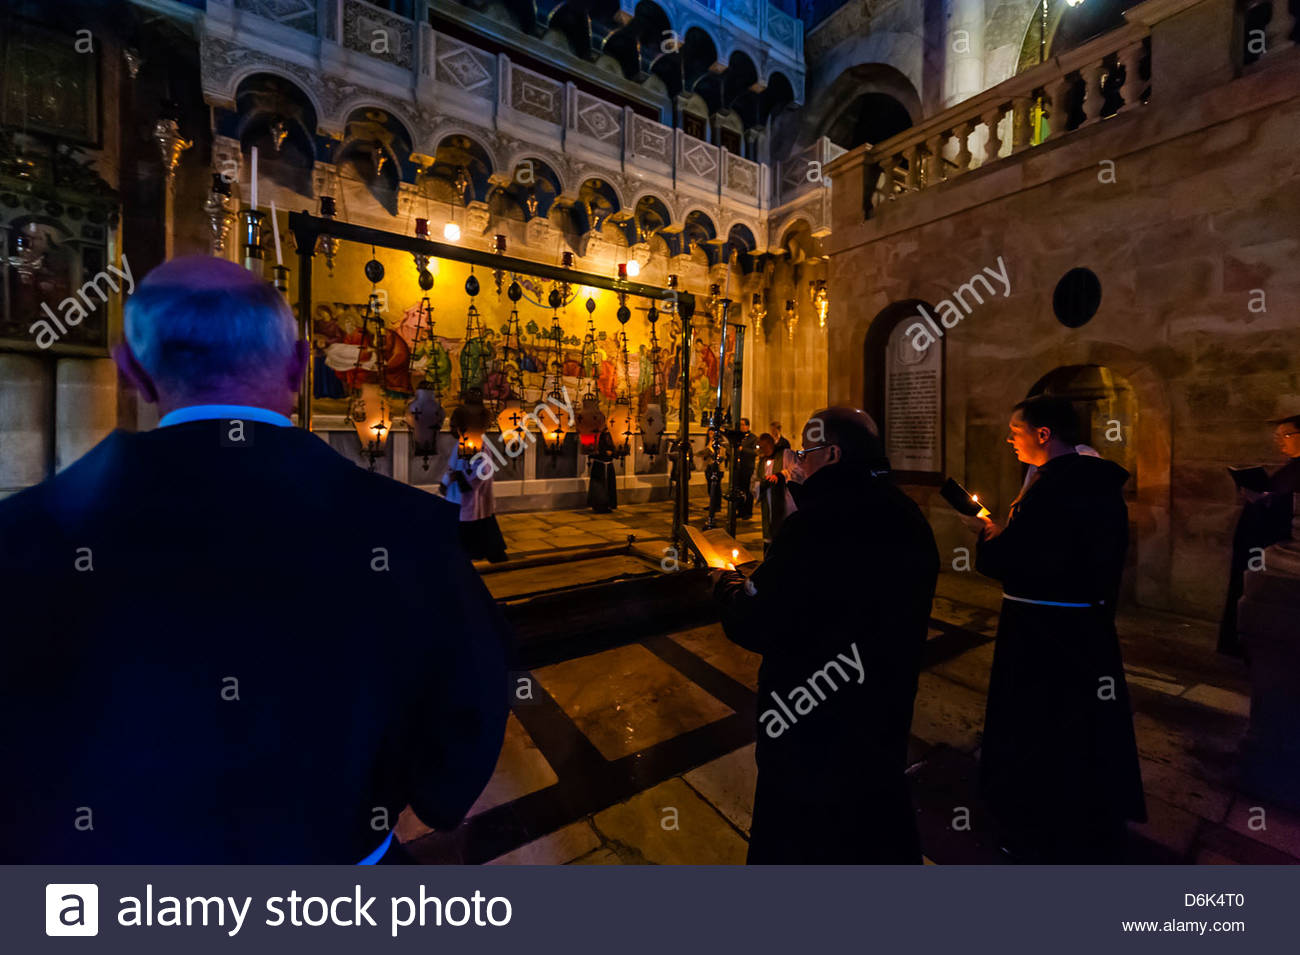 A Roman Catholic Mass in the Church of the Holy Sepulchre, Old City, Jerusalem, Israel - Stock Image